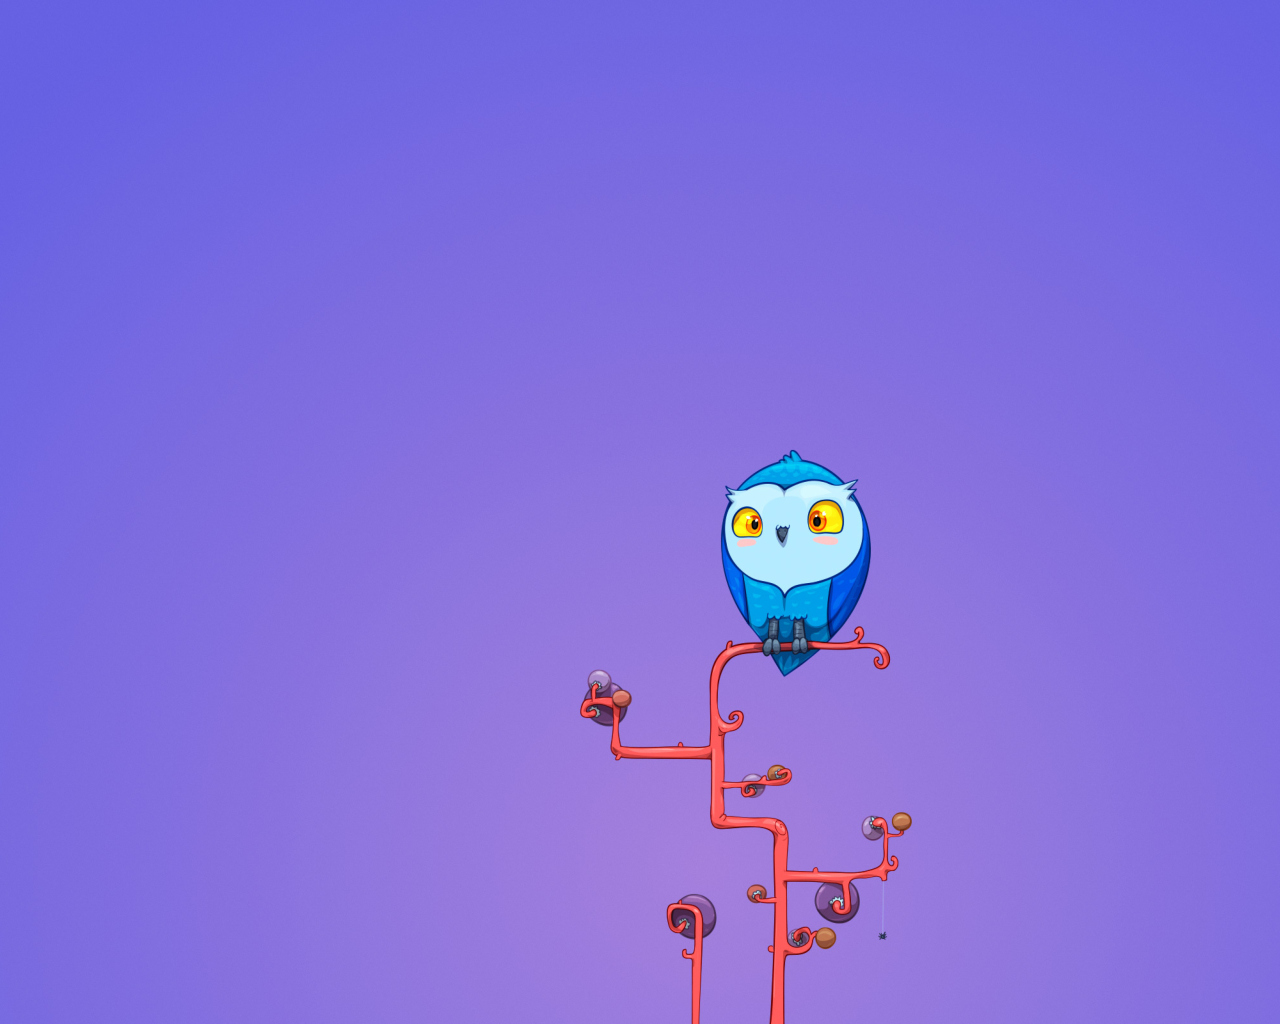 Das Cute Blue Owl Wallpaper 1280x1024